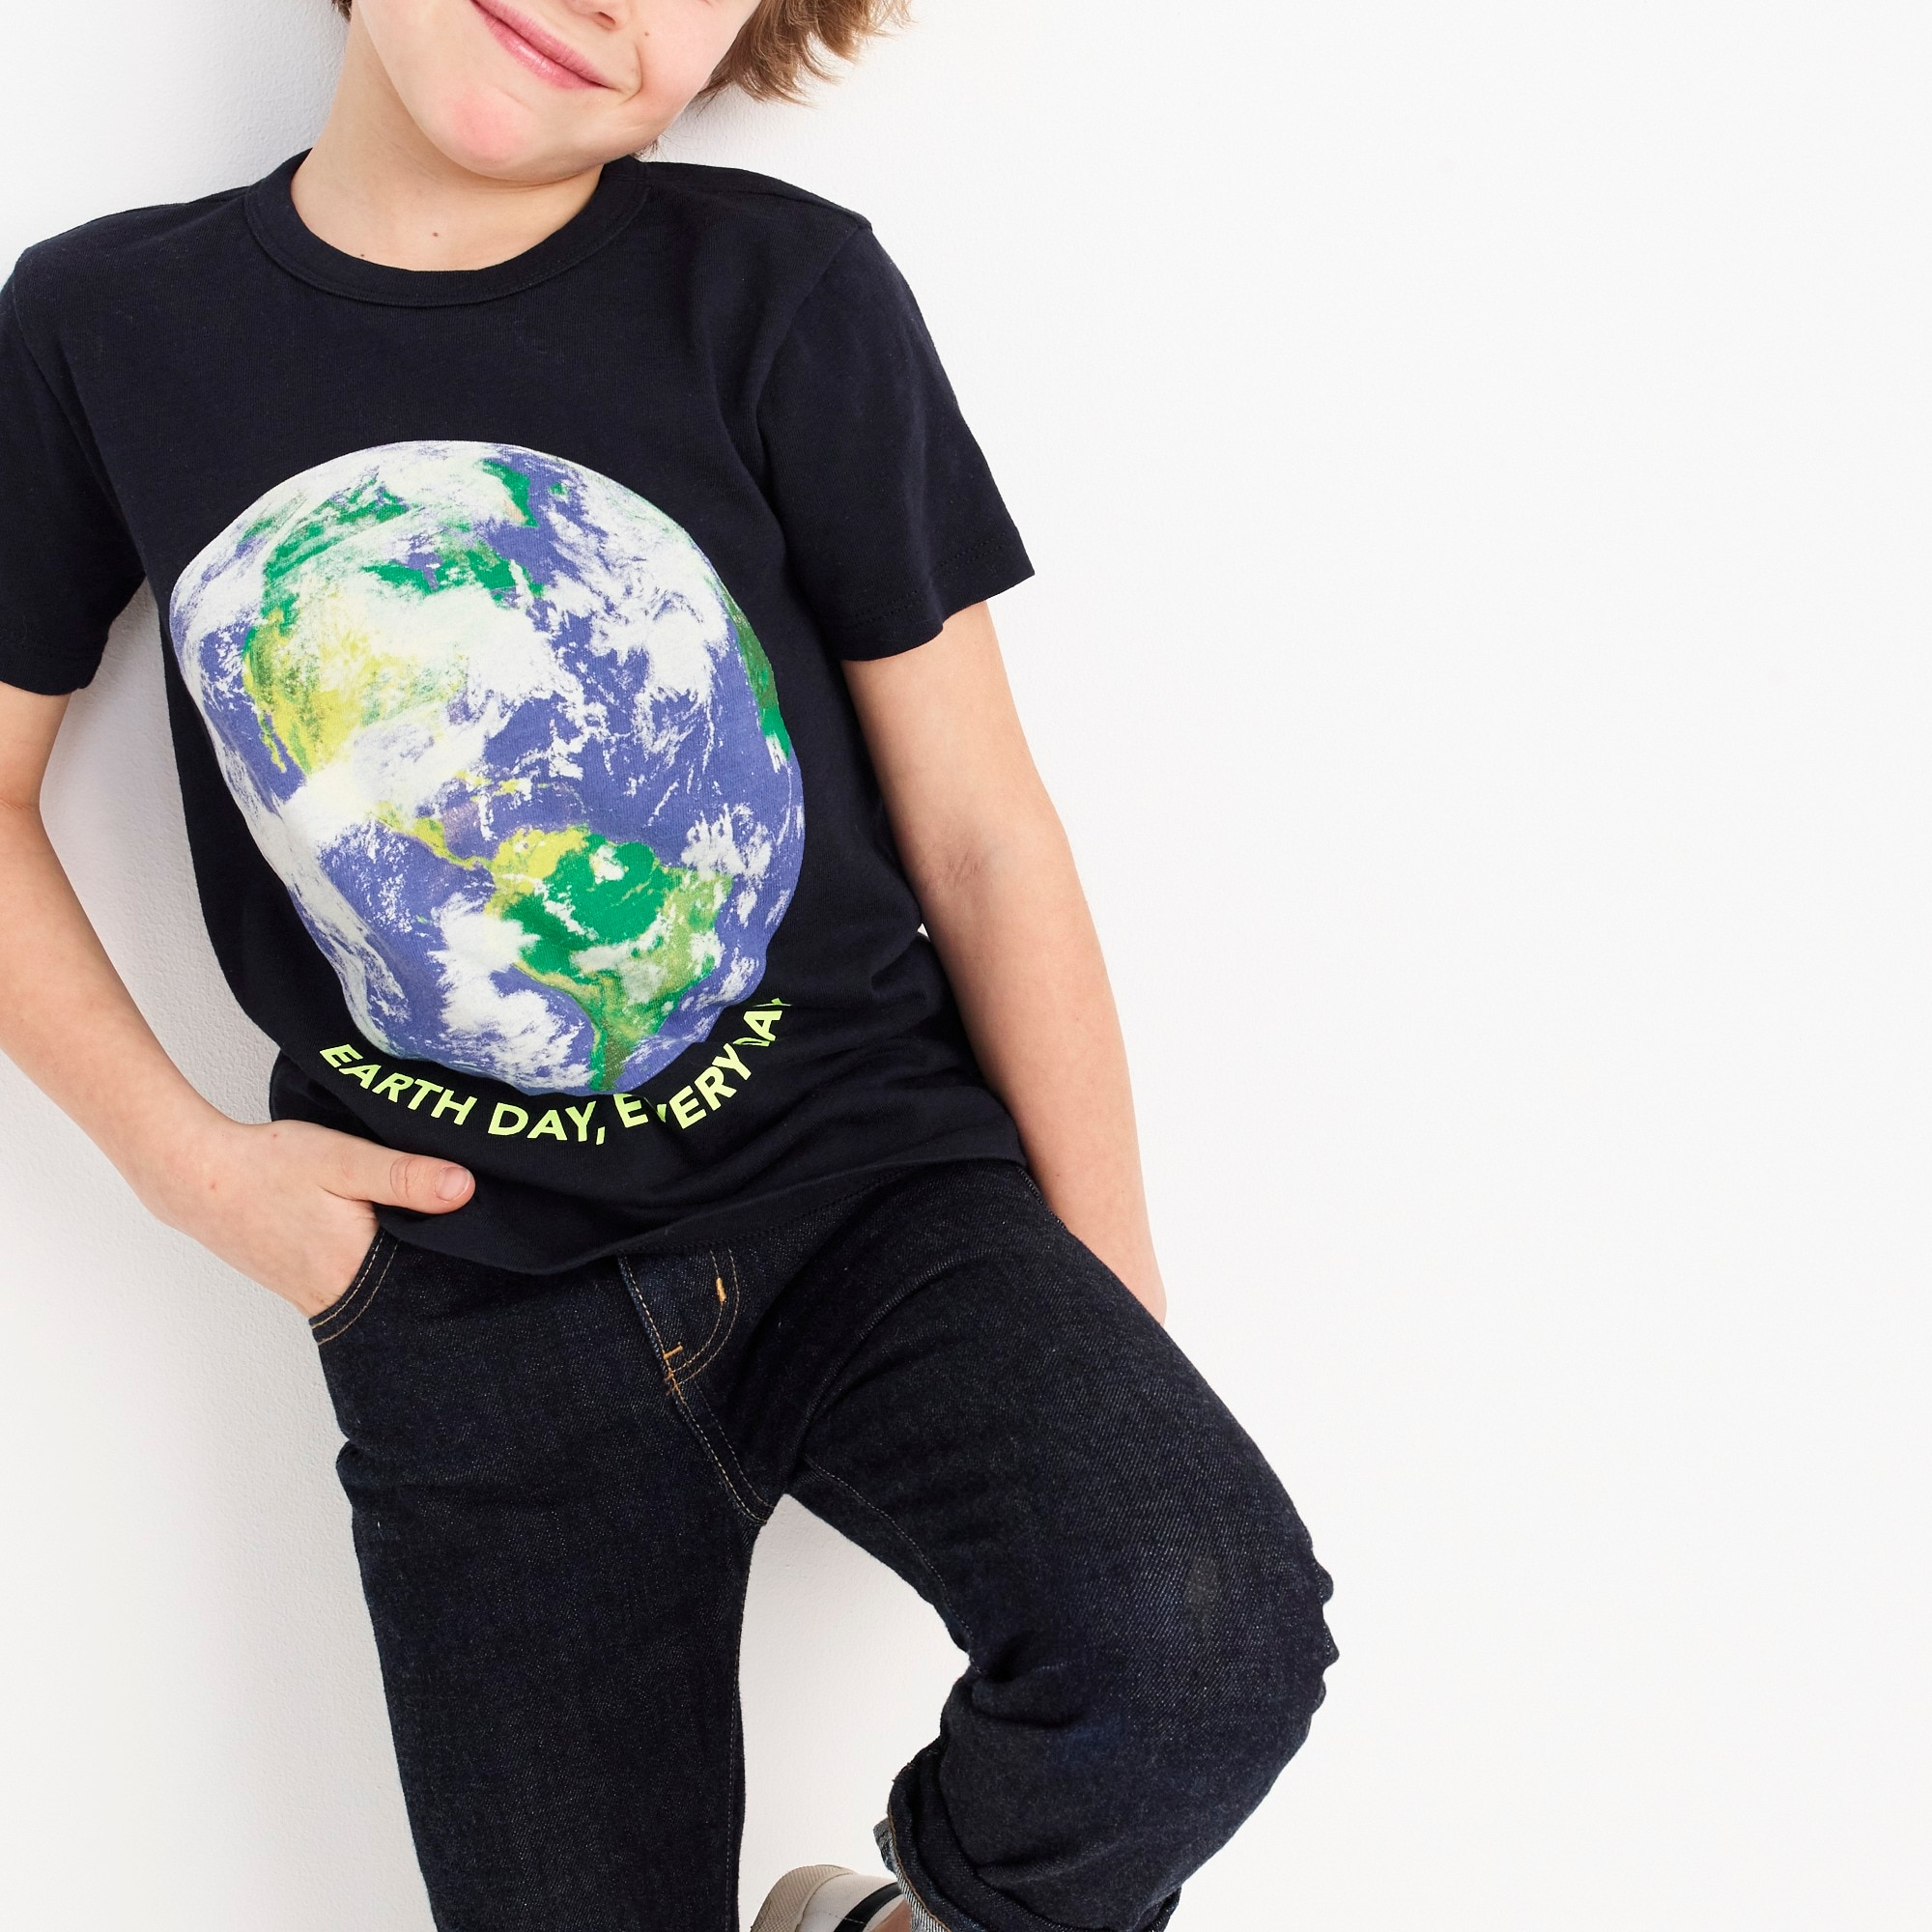 Kids' glow-in-the-dark Earth Day T-shirt girl graphics shop c